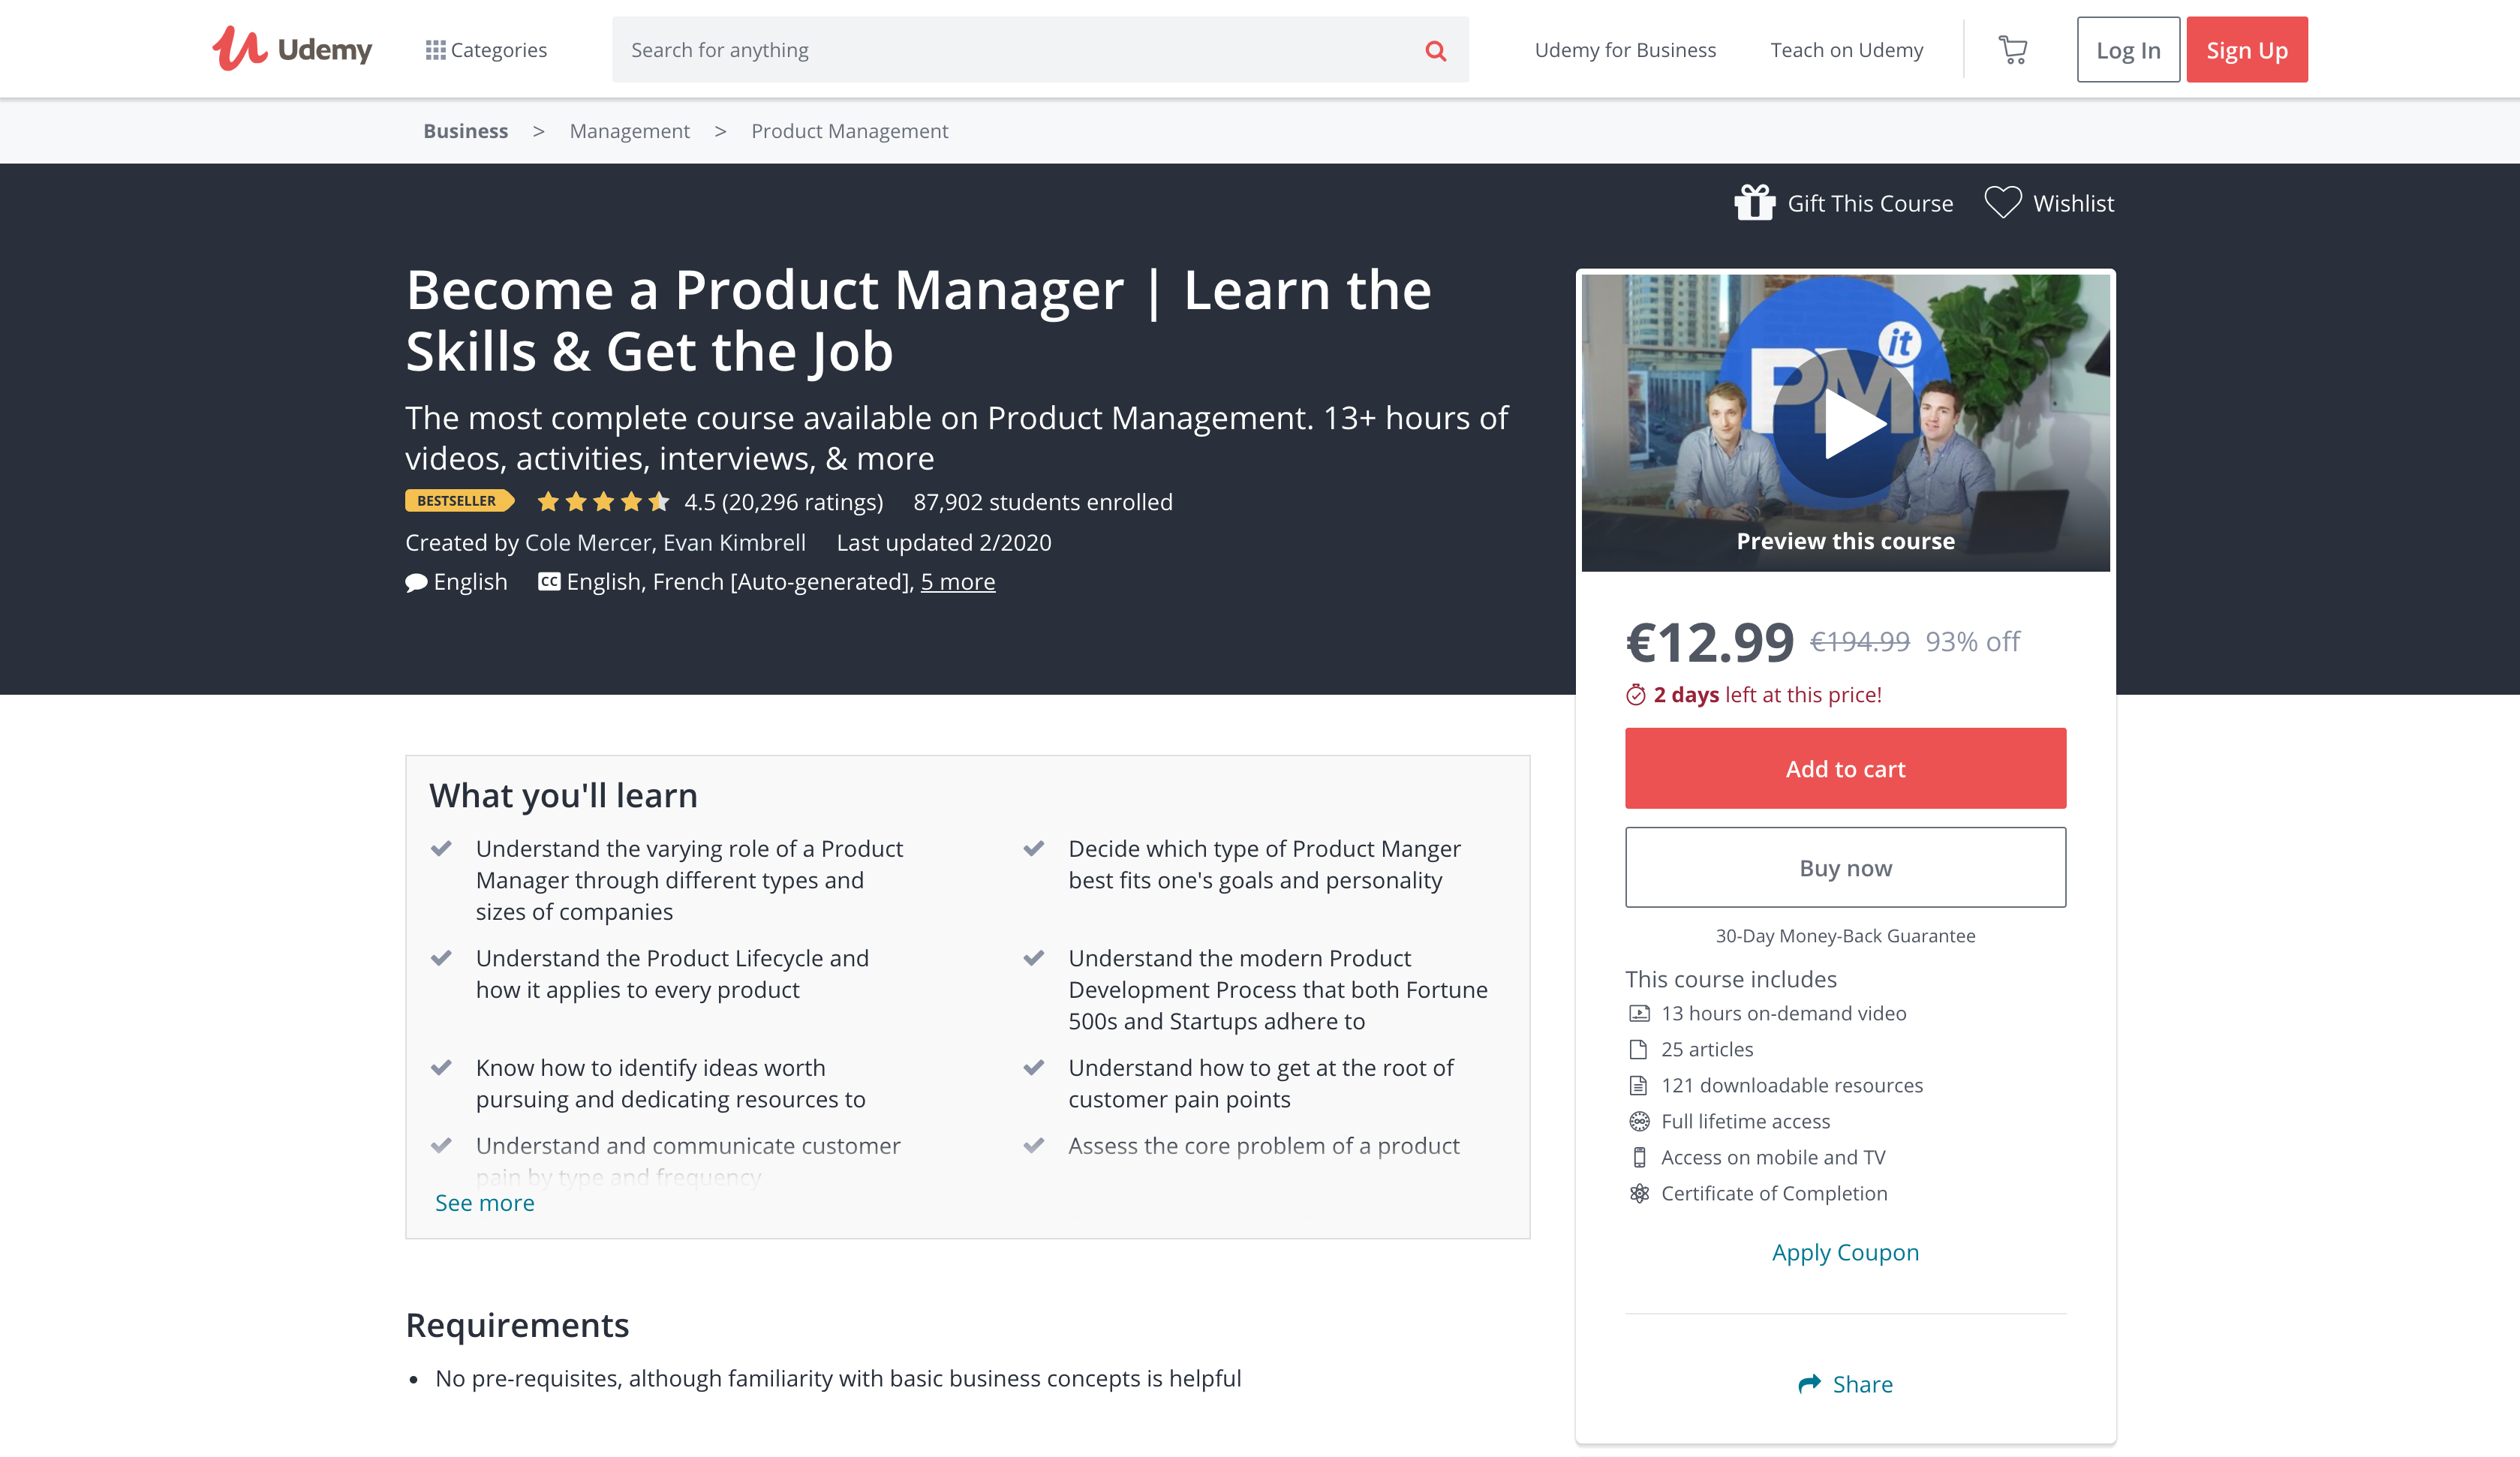 Become a Product Manager Course — Learn the Skills & Get the Job (Udemy)